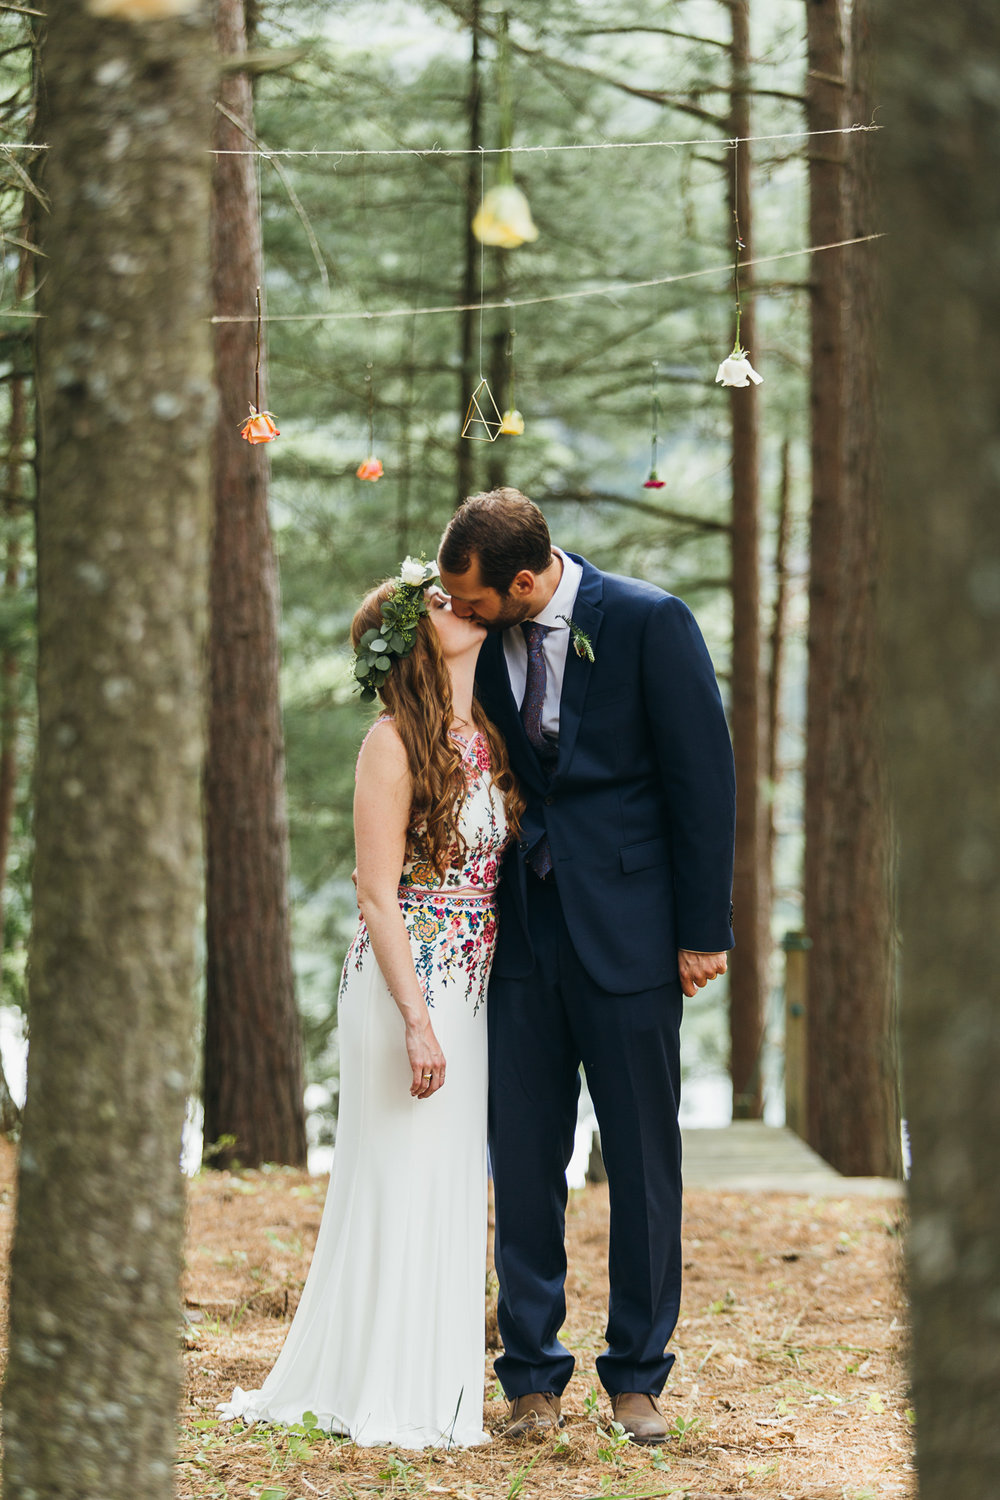 Intimate Backyard Wedding in Bancroft (97 of 143).jpg